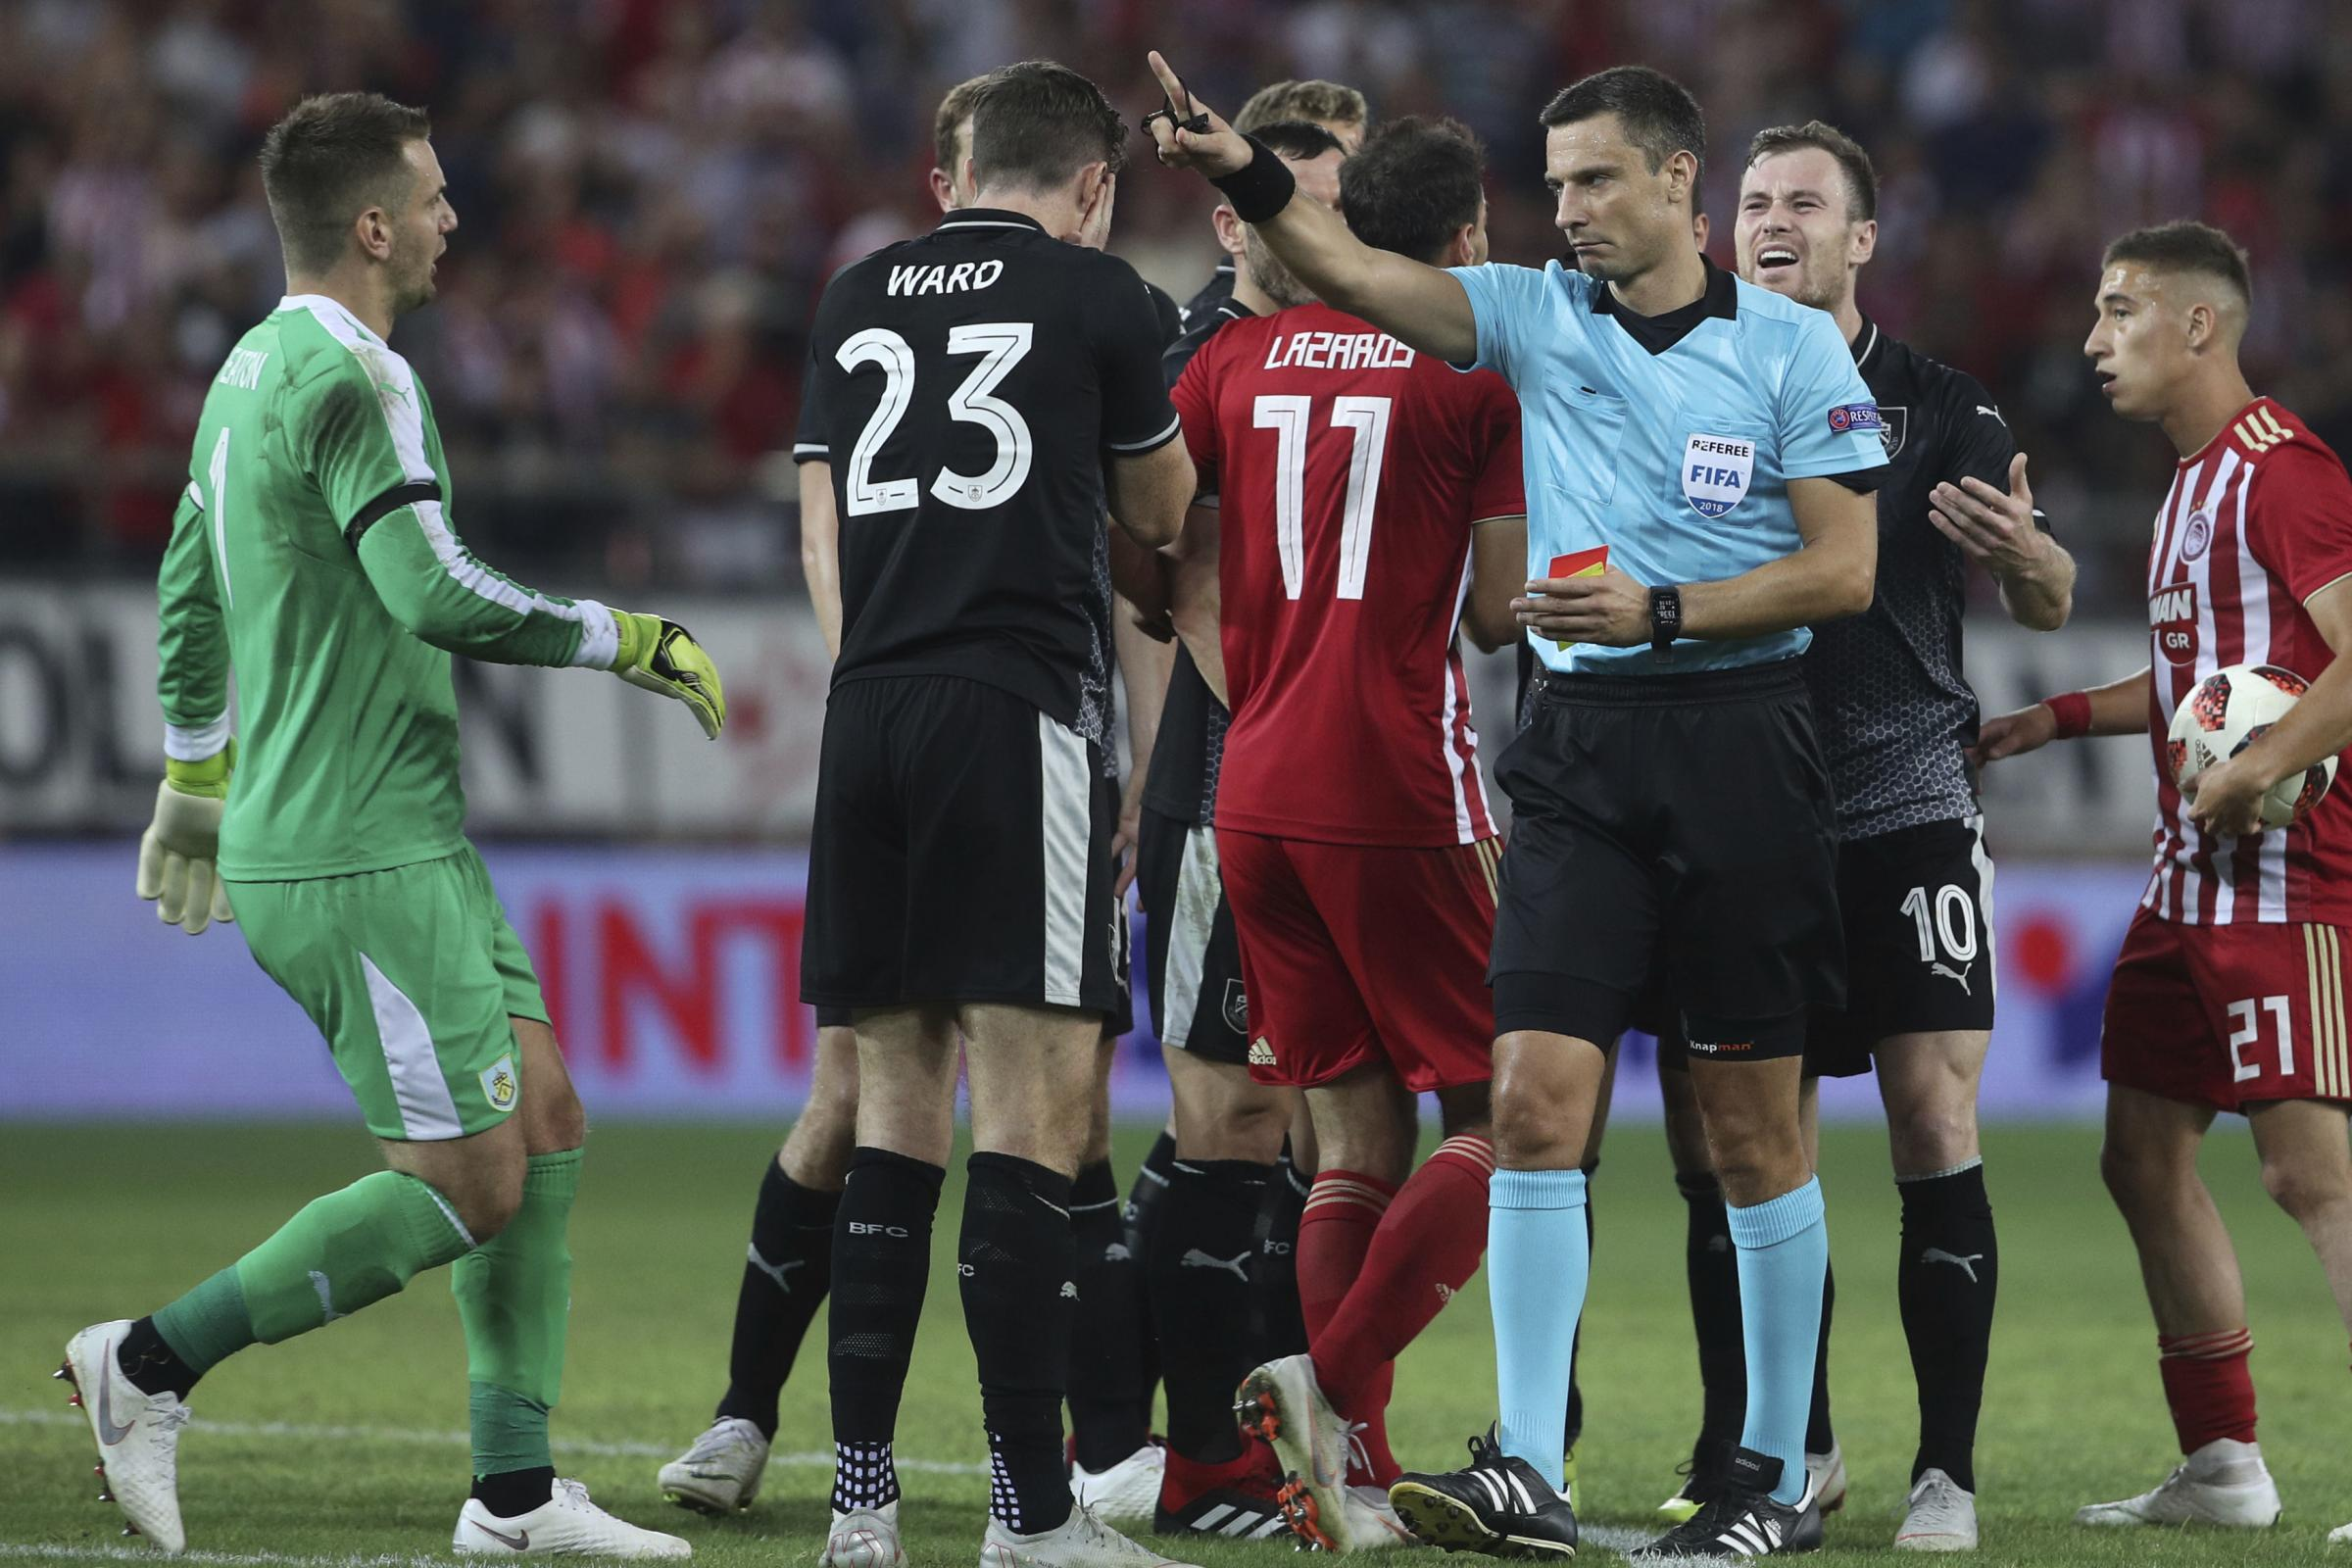 Referee Slavko Vincic gives a penalty to Olympiakos as Burnley's Ashley Barnes, second right, gestures during the Europa League playoffs, first leg, soccer match between Olympiacos Piraeus and Burnley at the Karaiskakis Stadium, in Athens, Greece, Thu